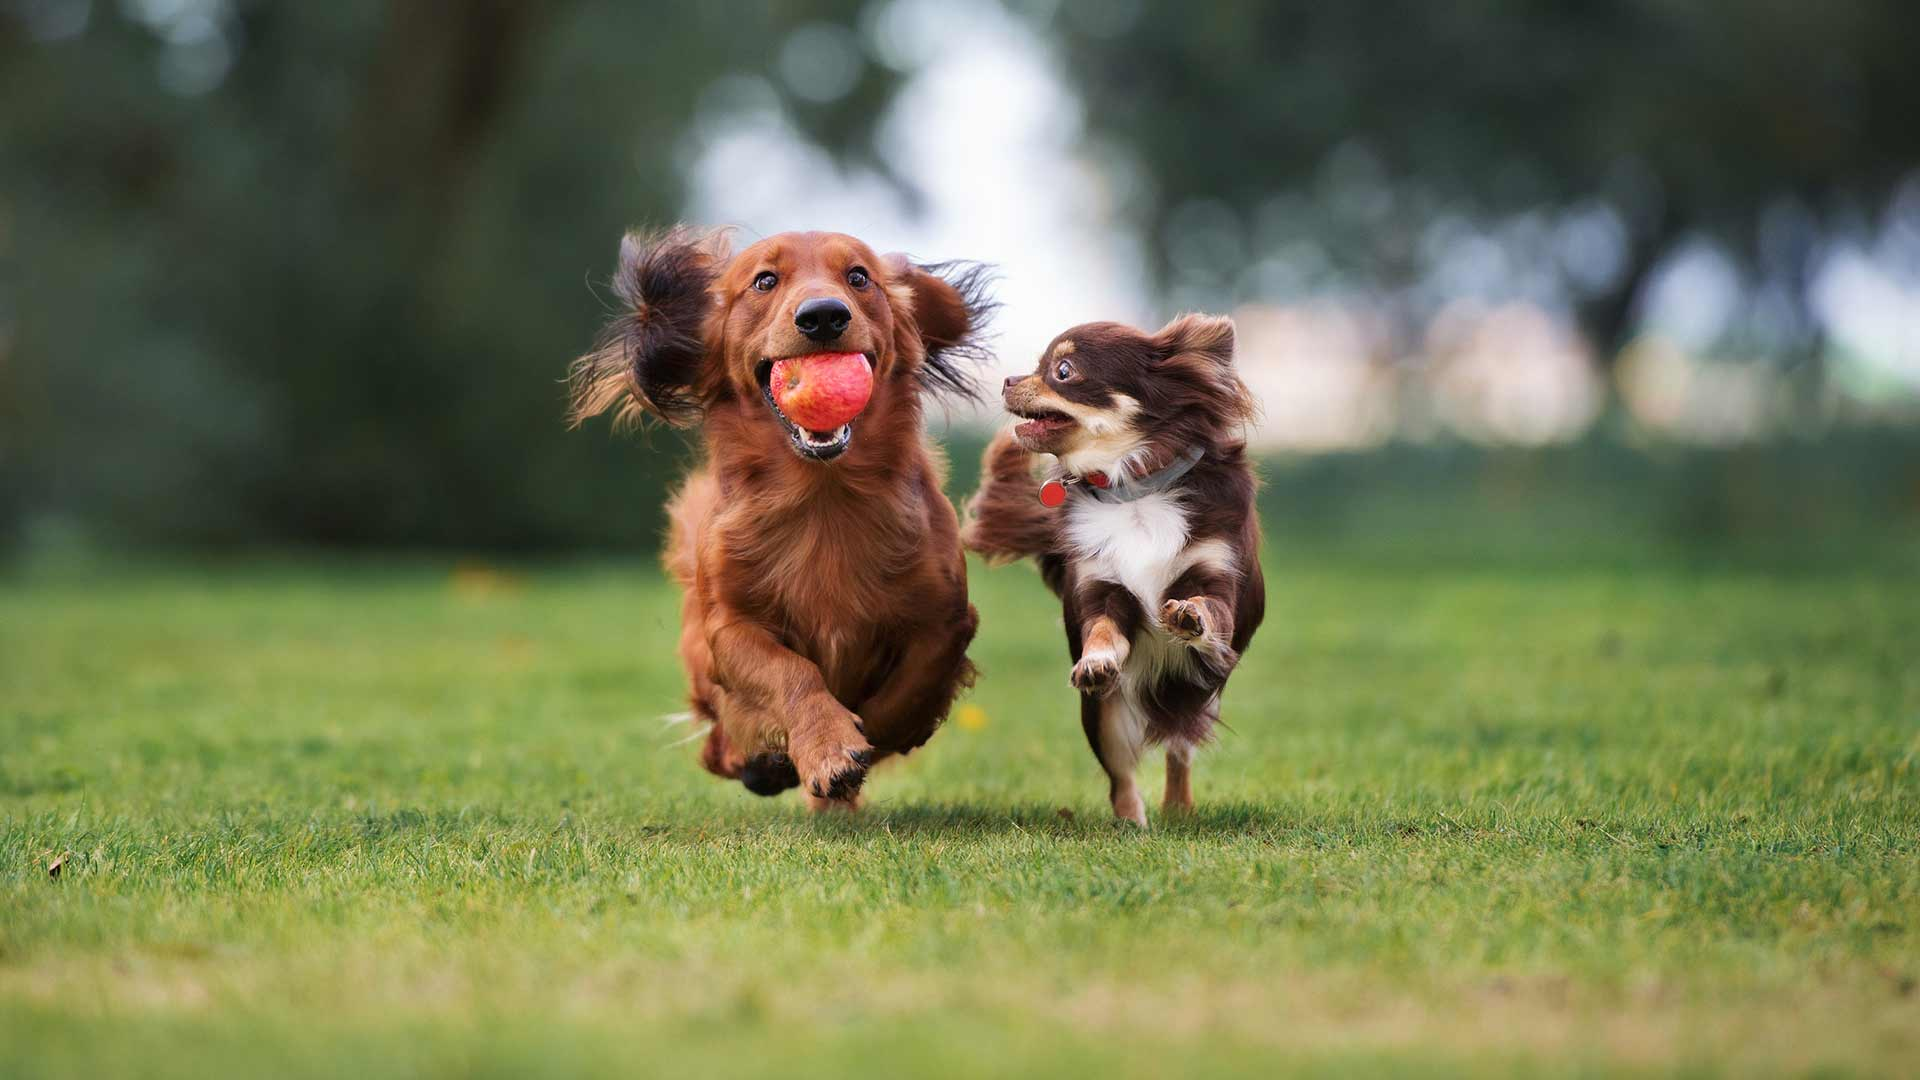 Two small dogs playing with an apple while running across the grass